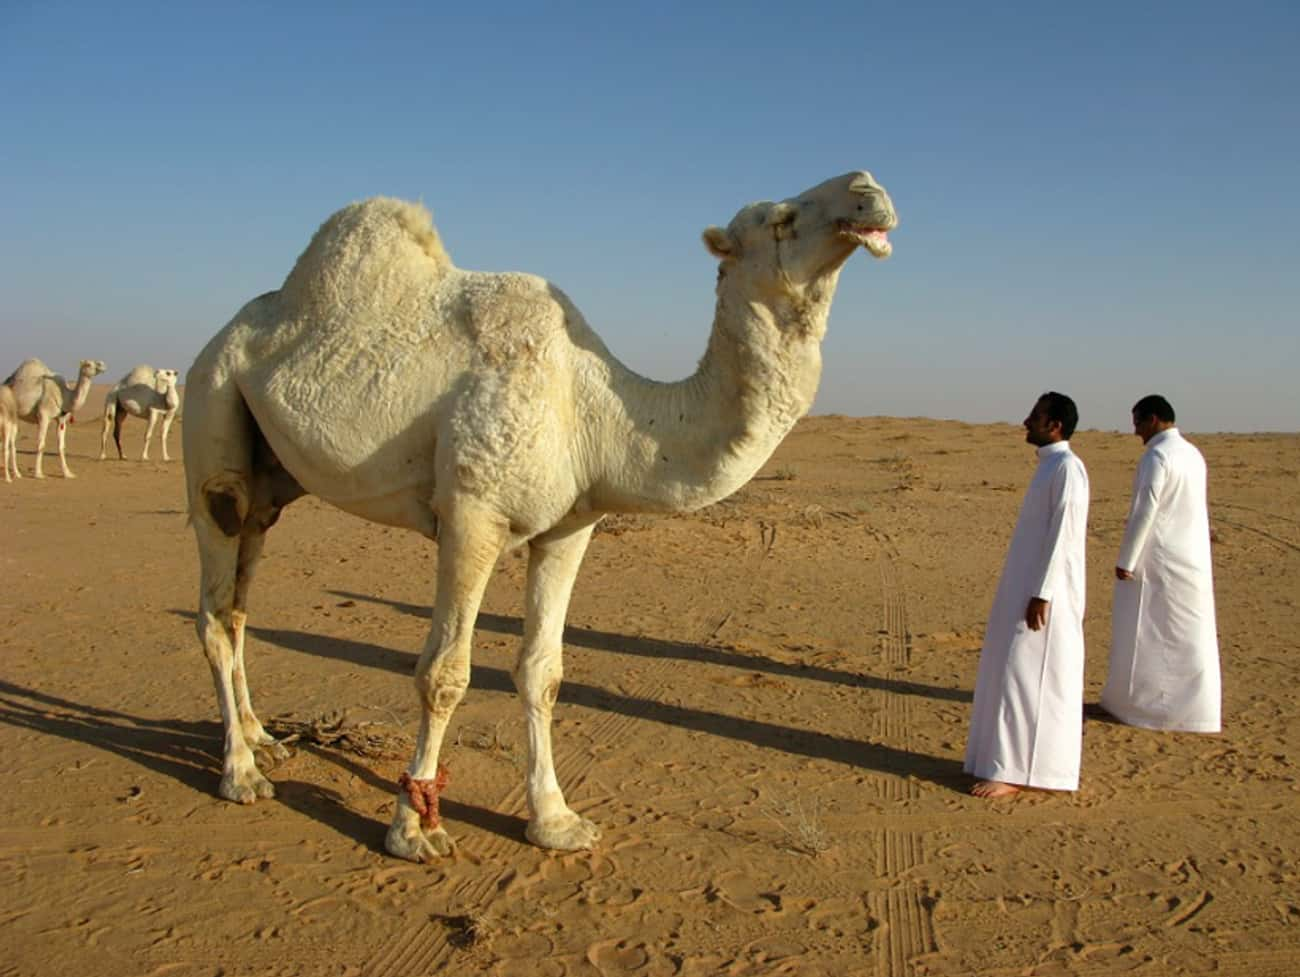 Saudi Arabia Imports Camels fr is listed (or ranked) 3 on the list The Most Unbelievable True Facts Ever